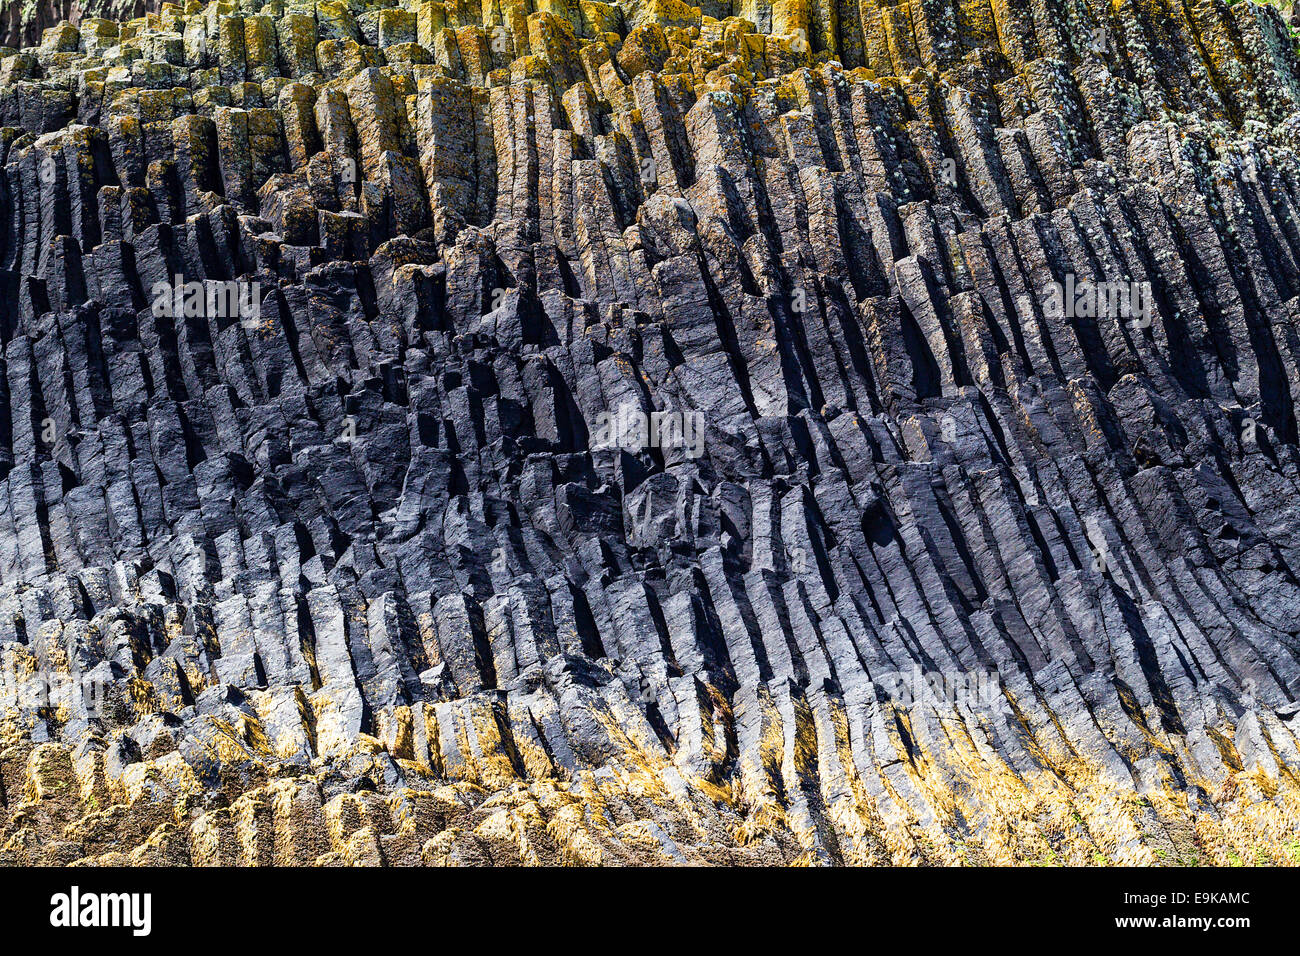 Columnar basalt formations on the island of Staffa in the Inner Hebrdes, Scotland - Stock Image